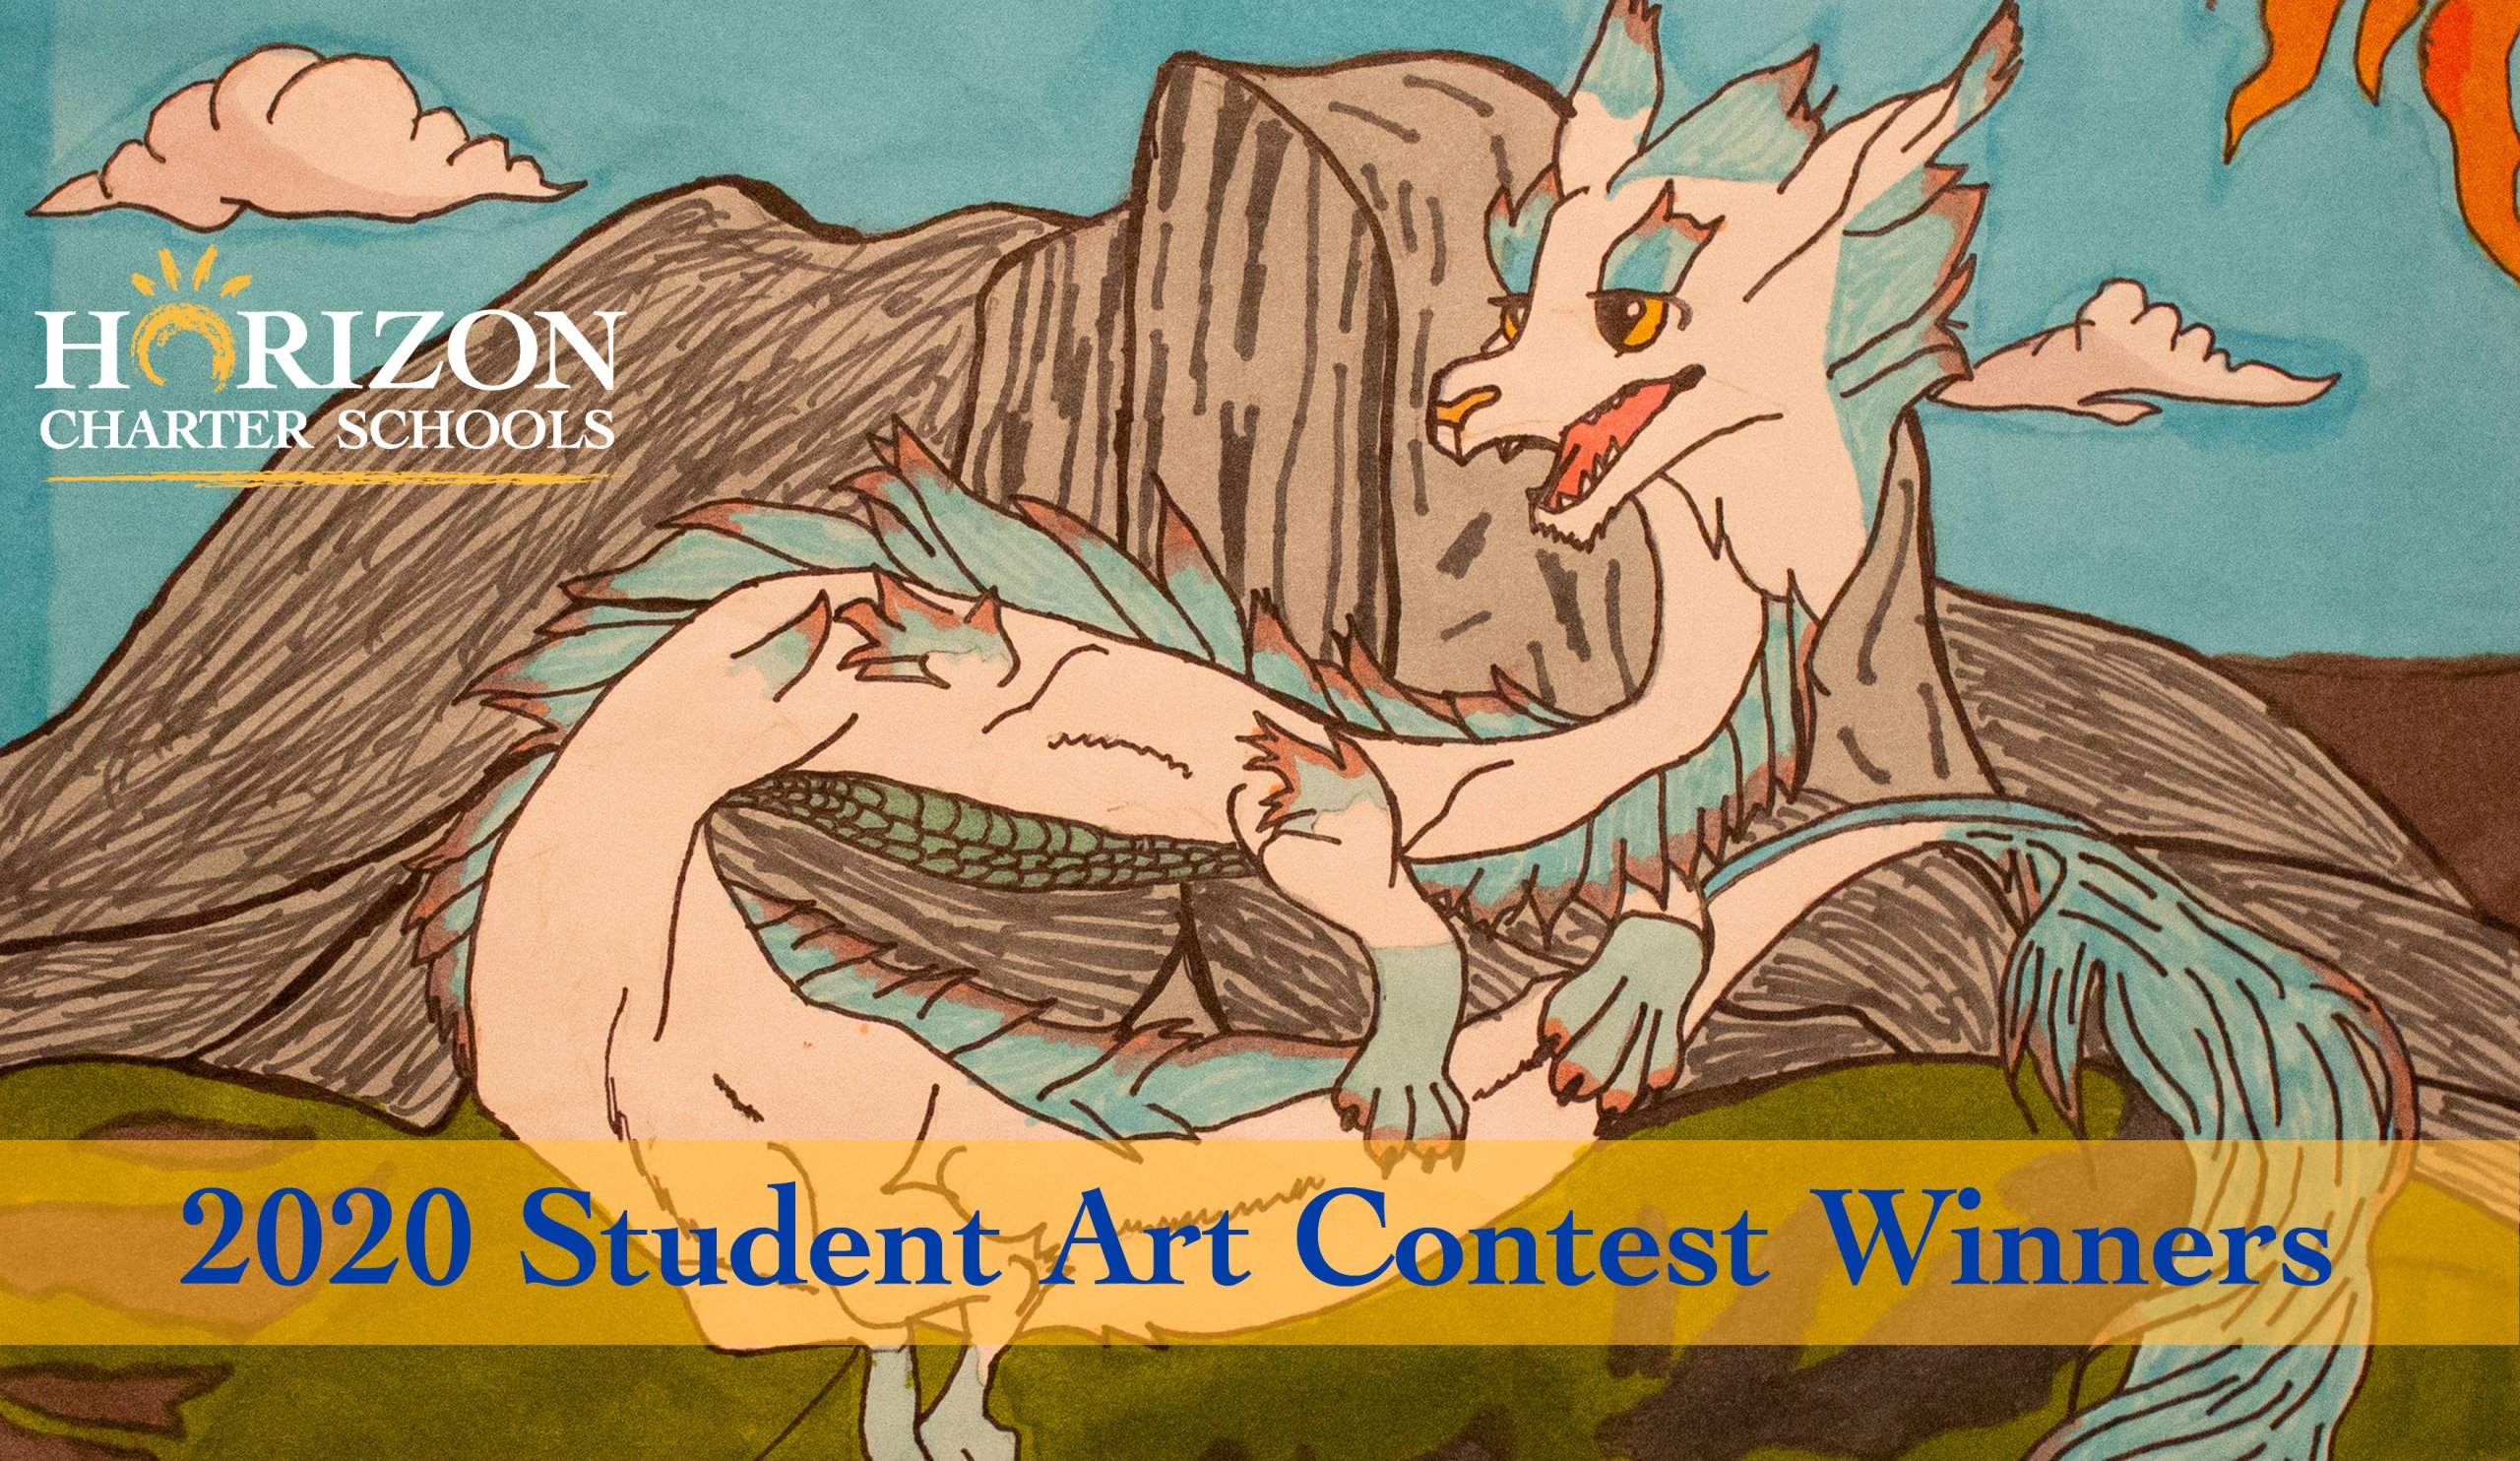 2020 Student ARt Contest Winners